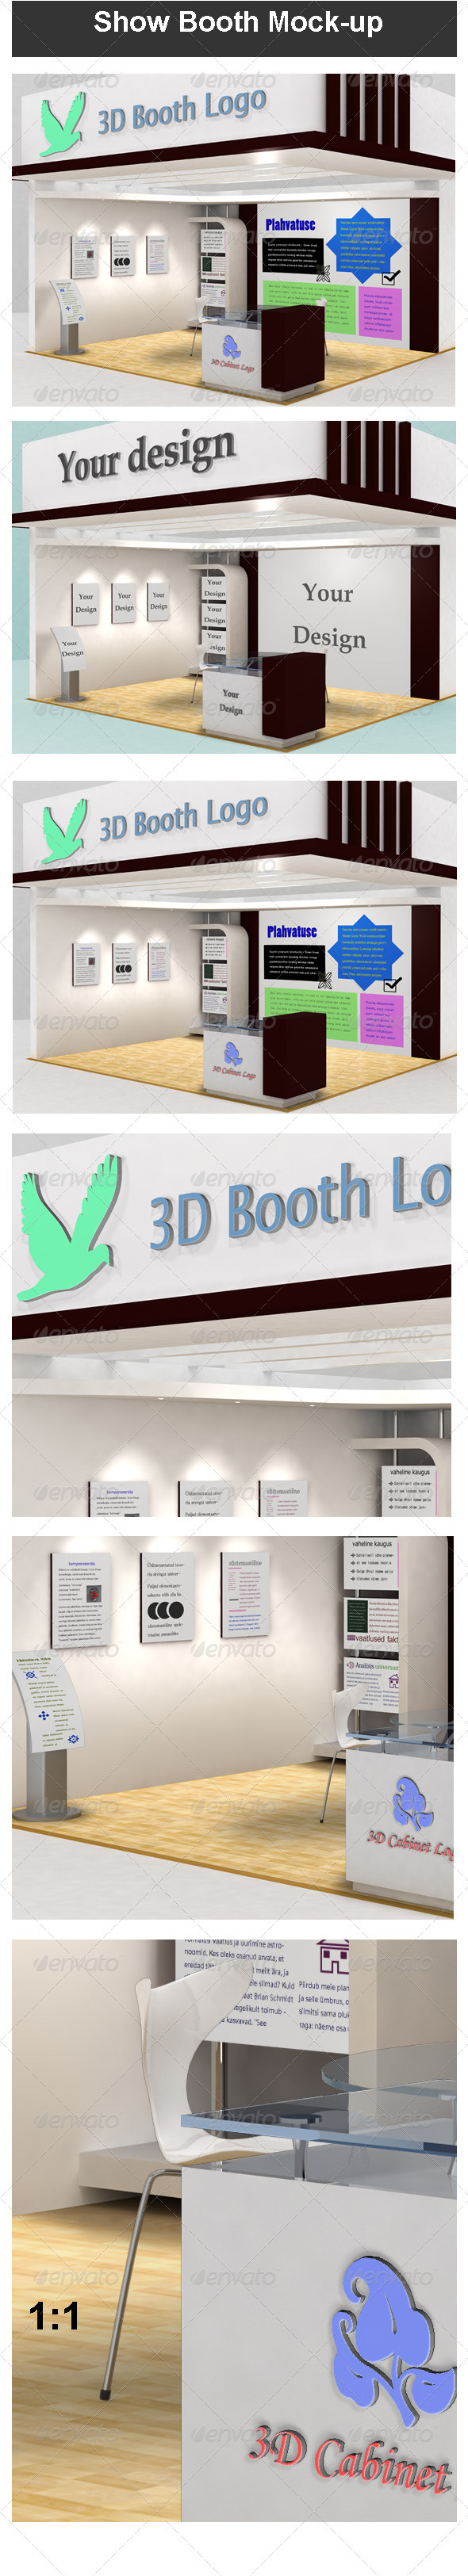 Show Booth Mock-up - Miscellaneous Displays